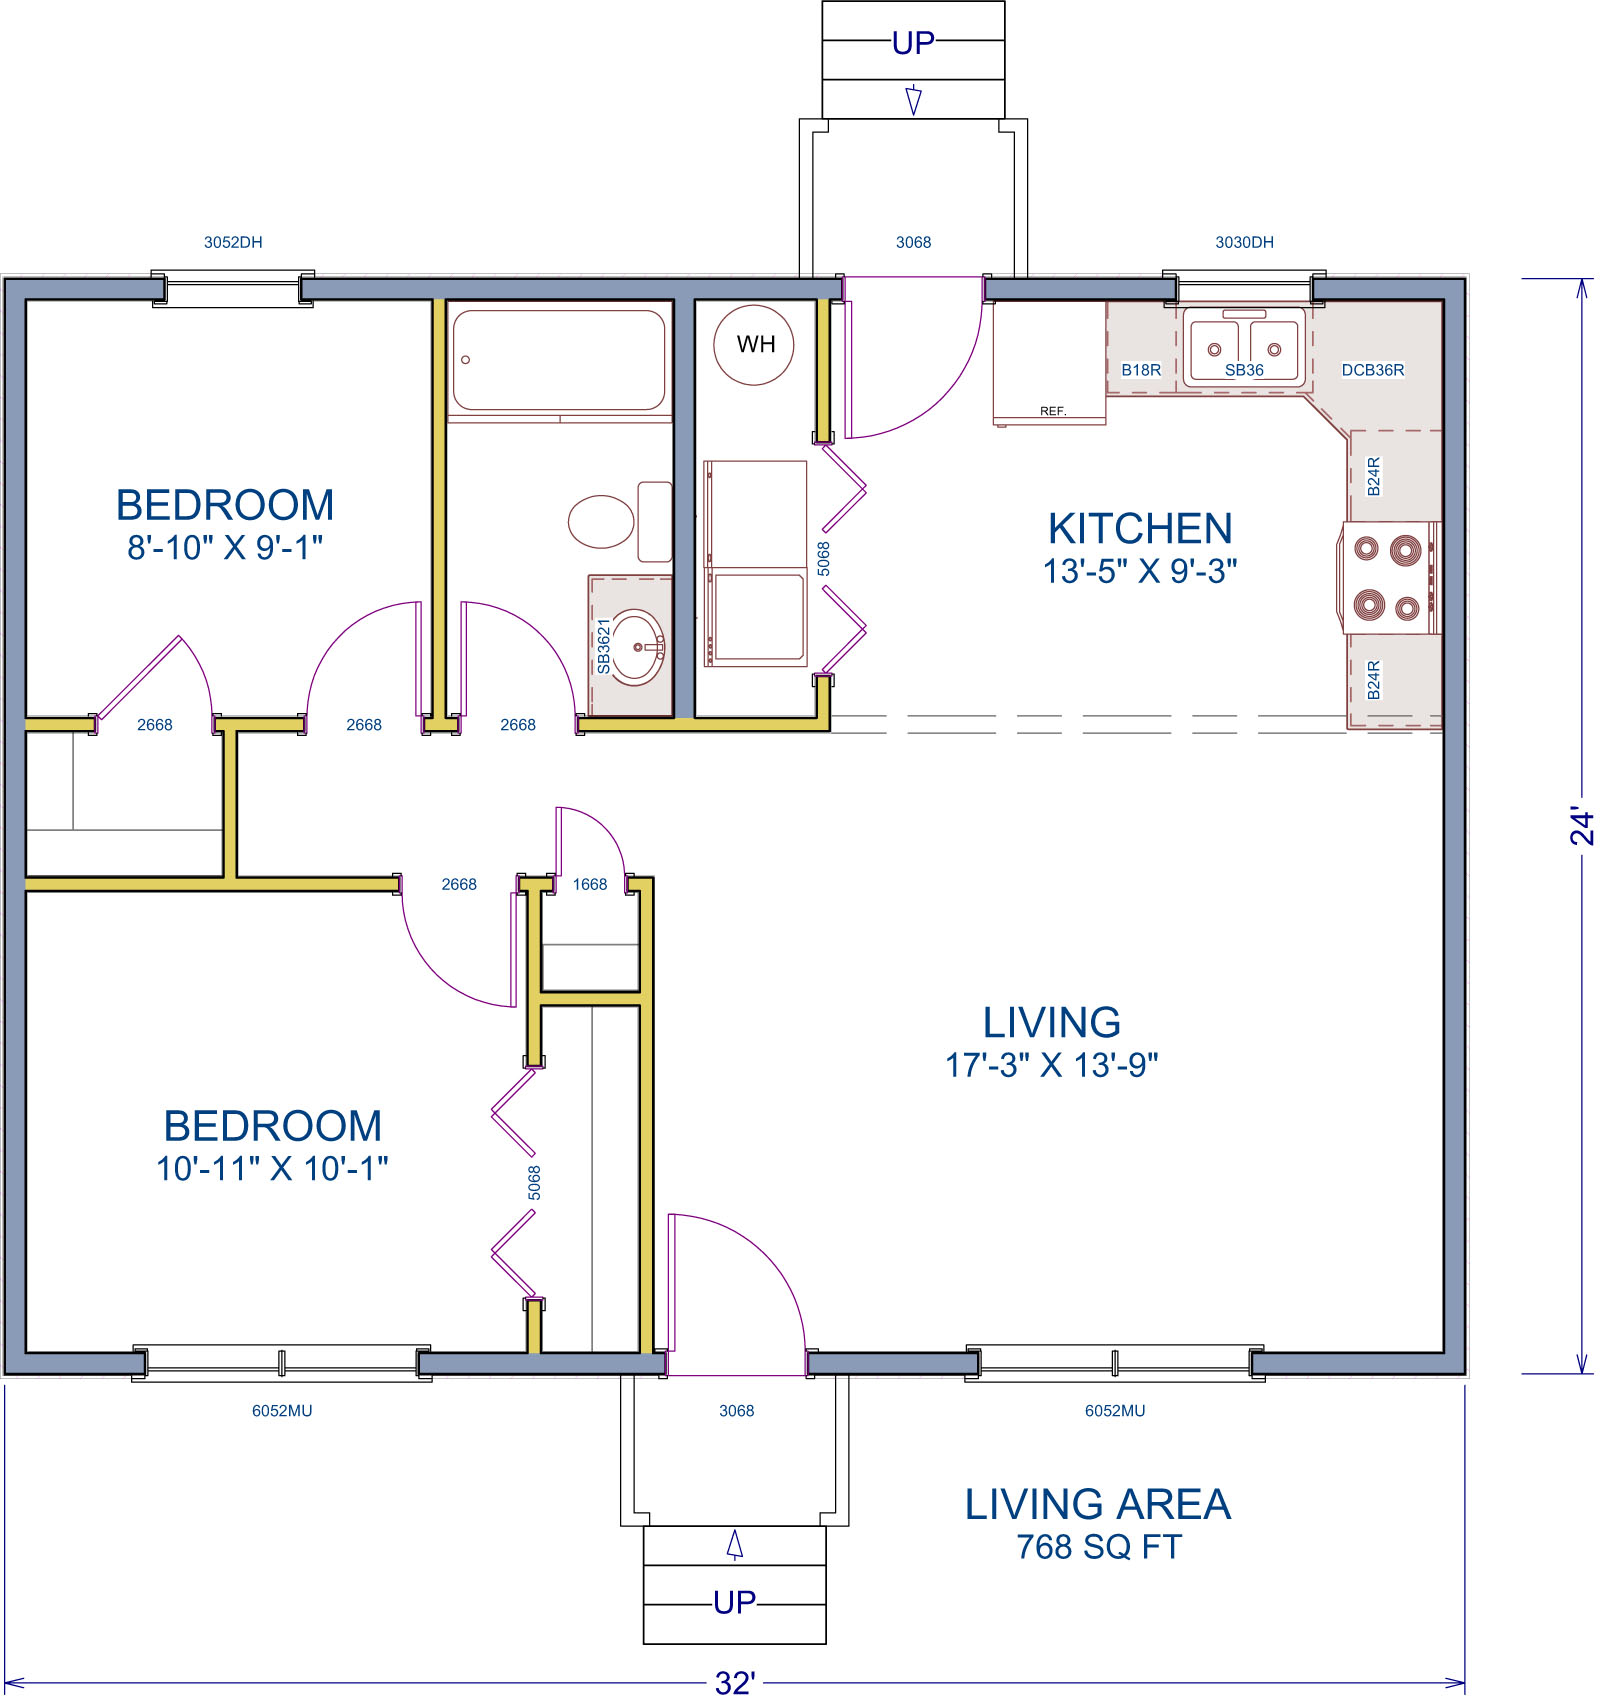 House plans for small, one-story home